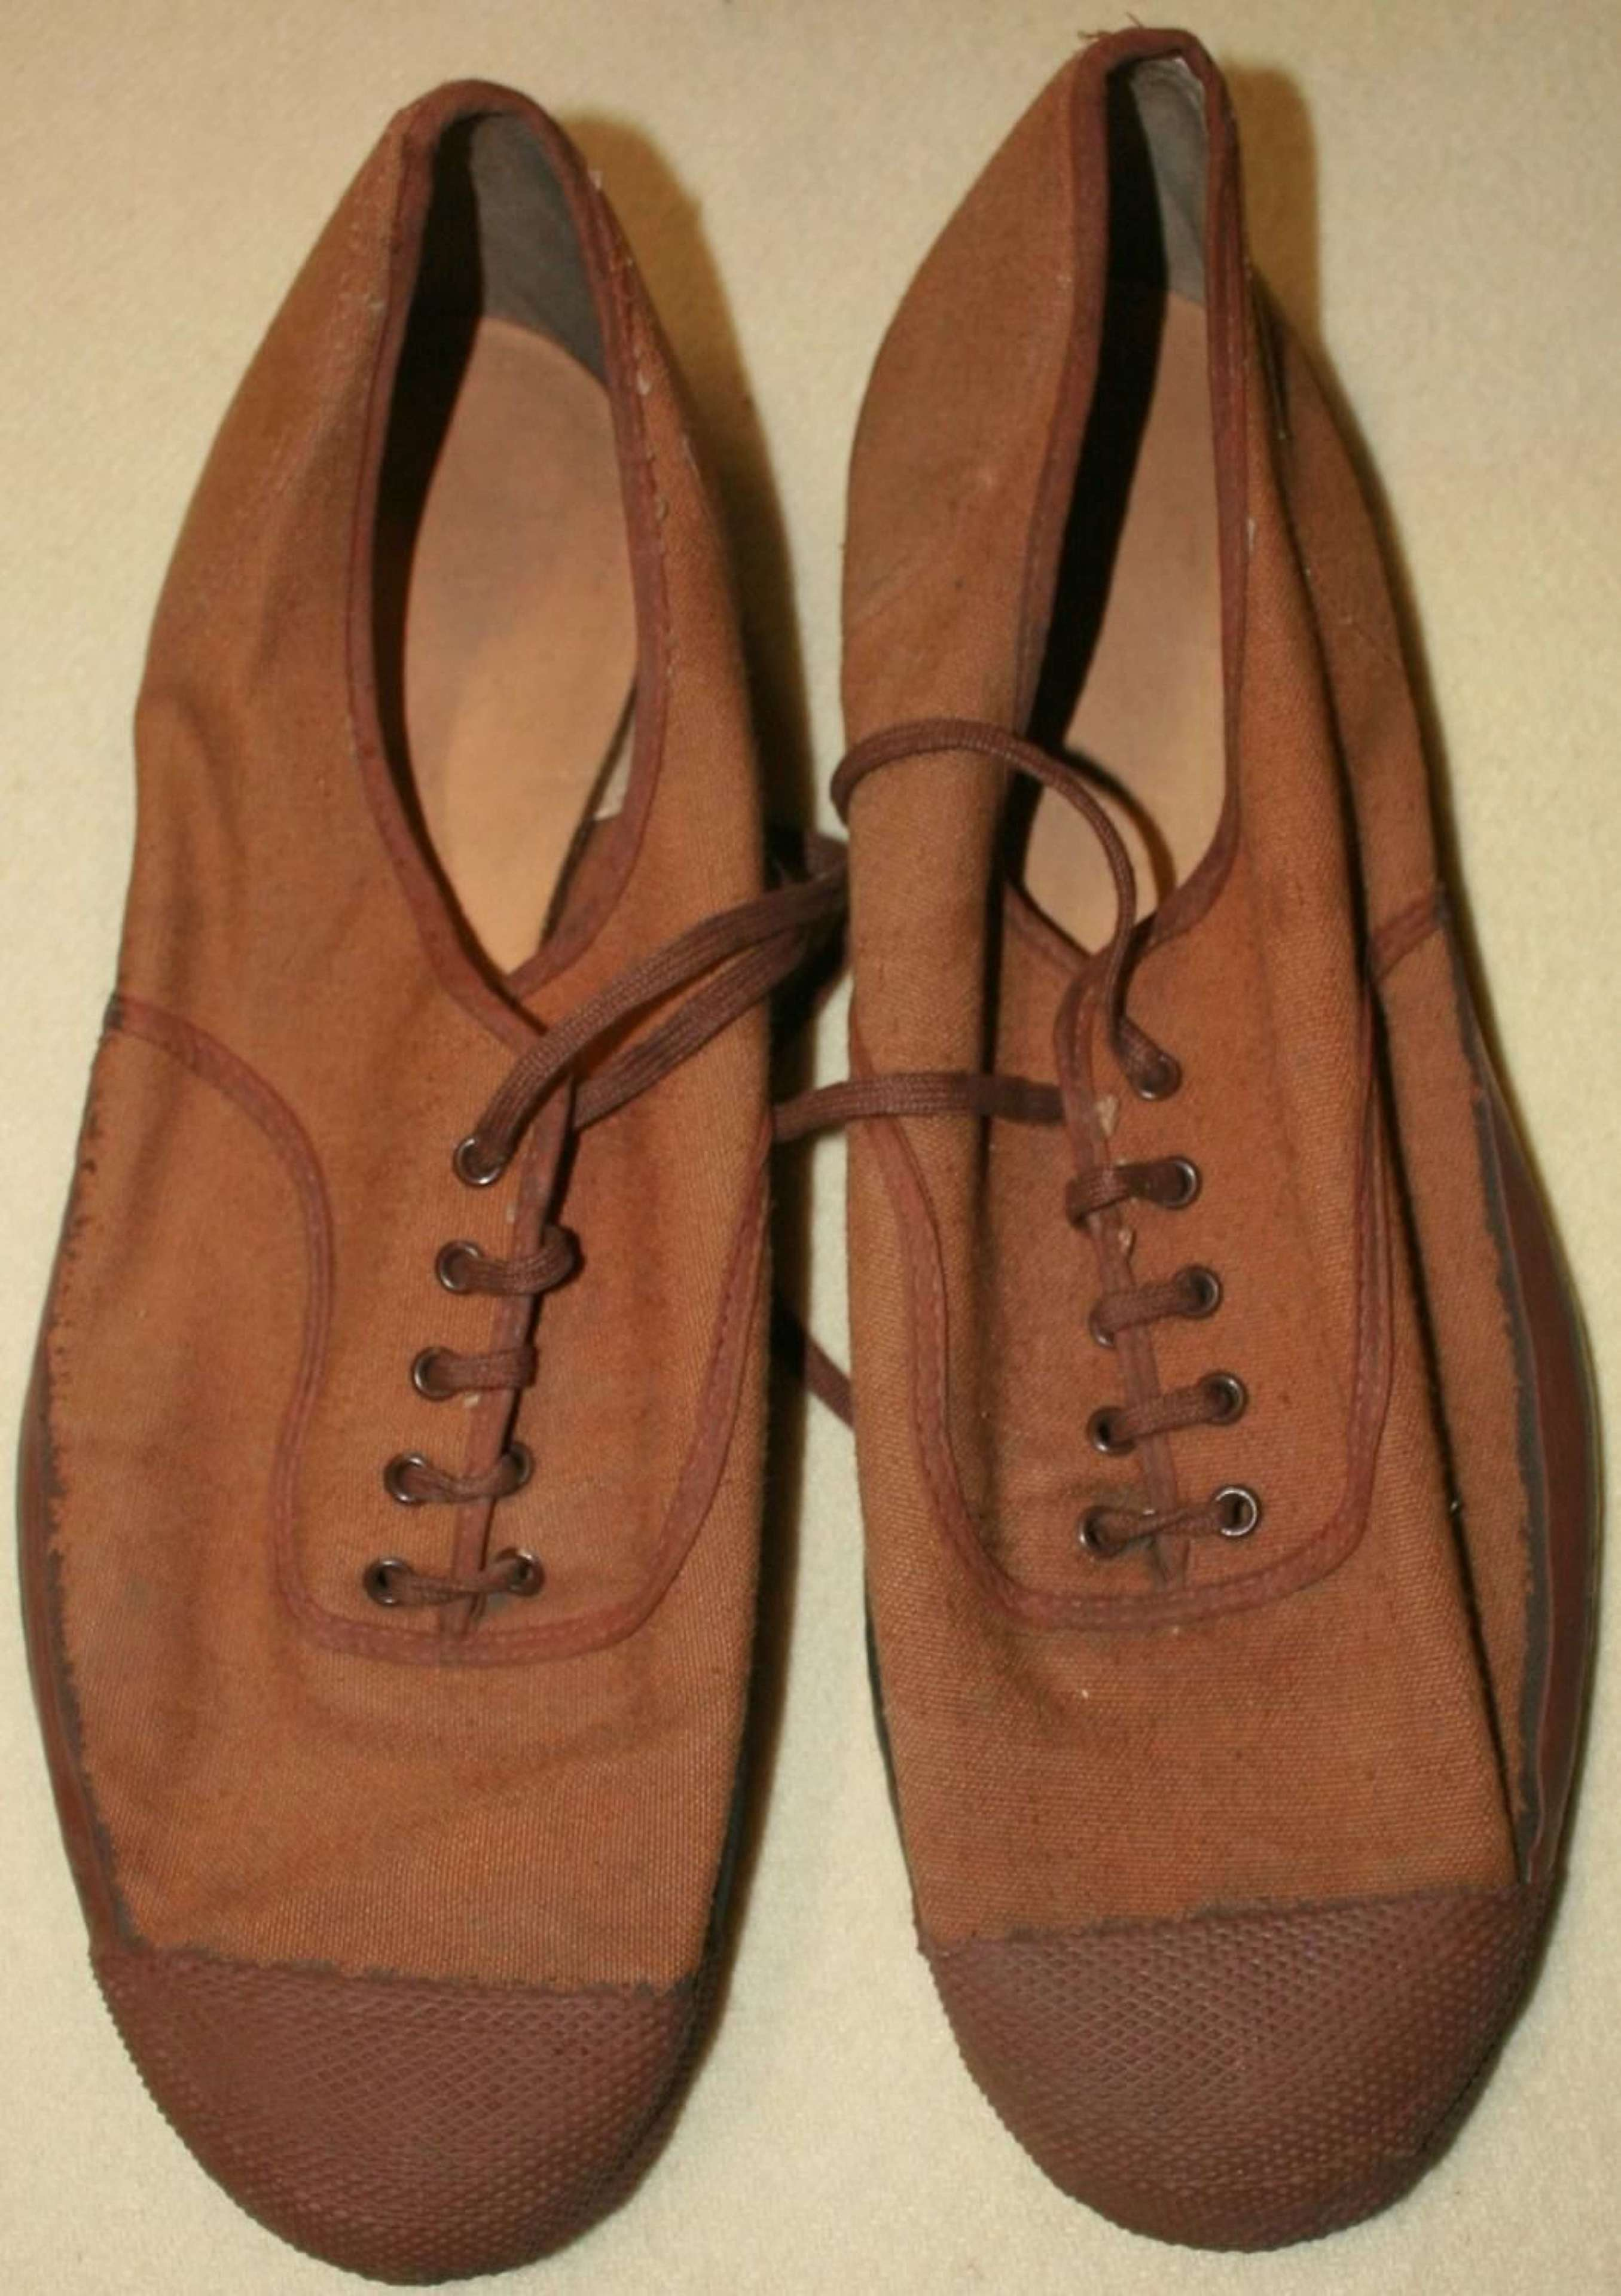 A PAIR OF WWII STYLE PLIMSOLLS